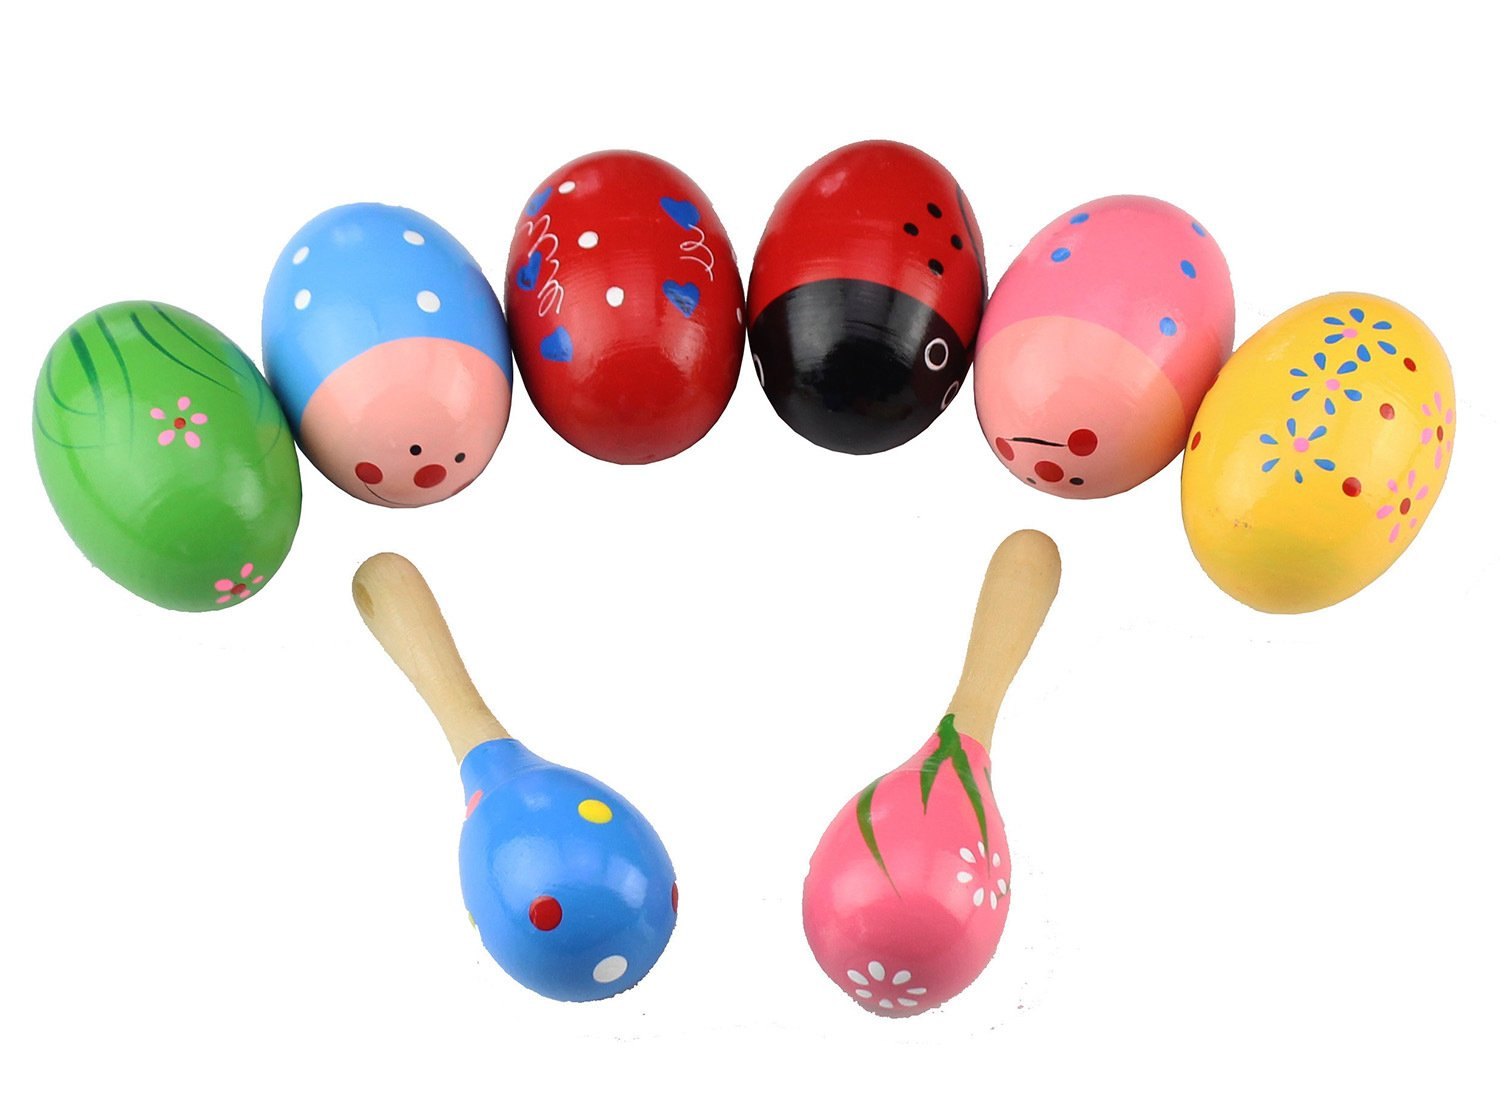 8 Piece Wooden Egg Percussion Musical Shaker Maracas Egg Child Kids Toys ,Easter Hunt ,Halloween Props,Favors,Musical Instrument-JAKY Global JKAY Global HS3897